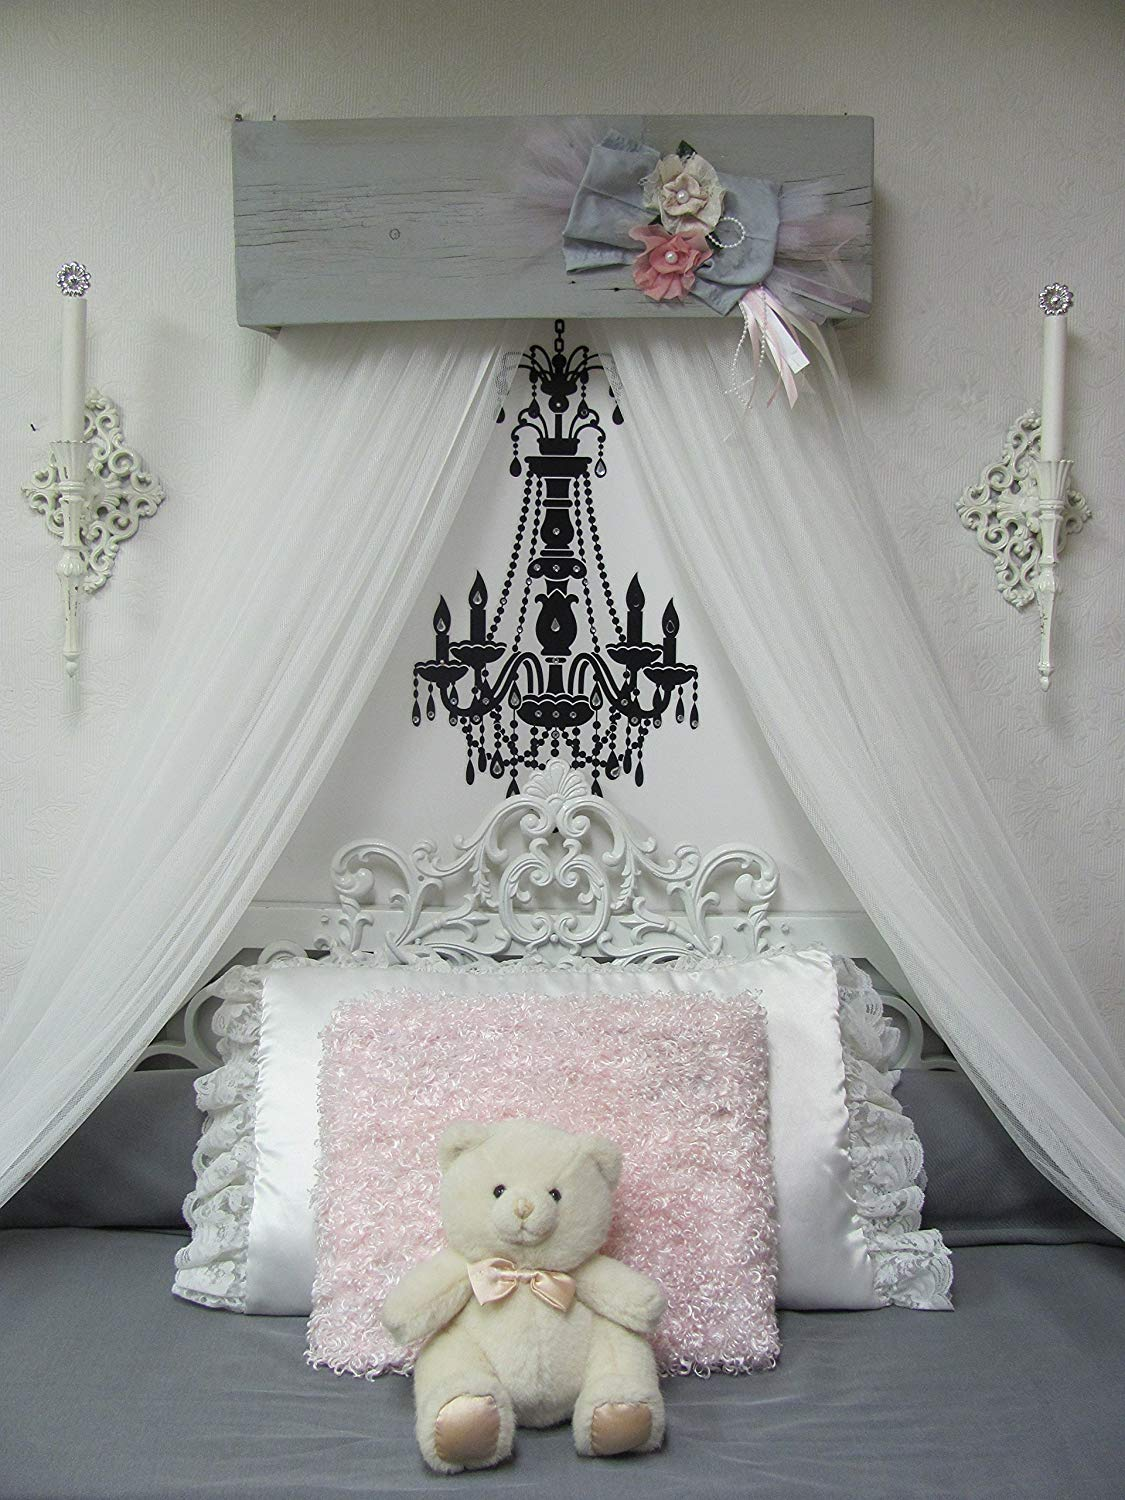 Nursery Decor Shabby Chic Princess Bed Girls Bedroom Crib Canopy Baby Gray Pink Ivory FREE White curtains Vintage inspired Chalk paint SALE